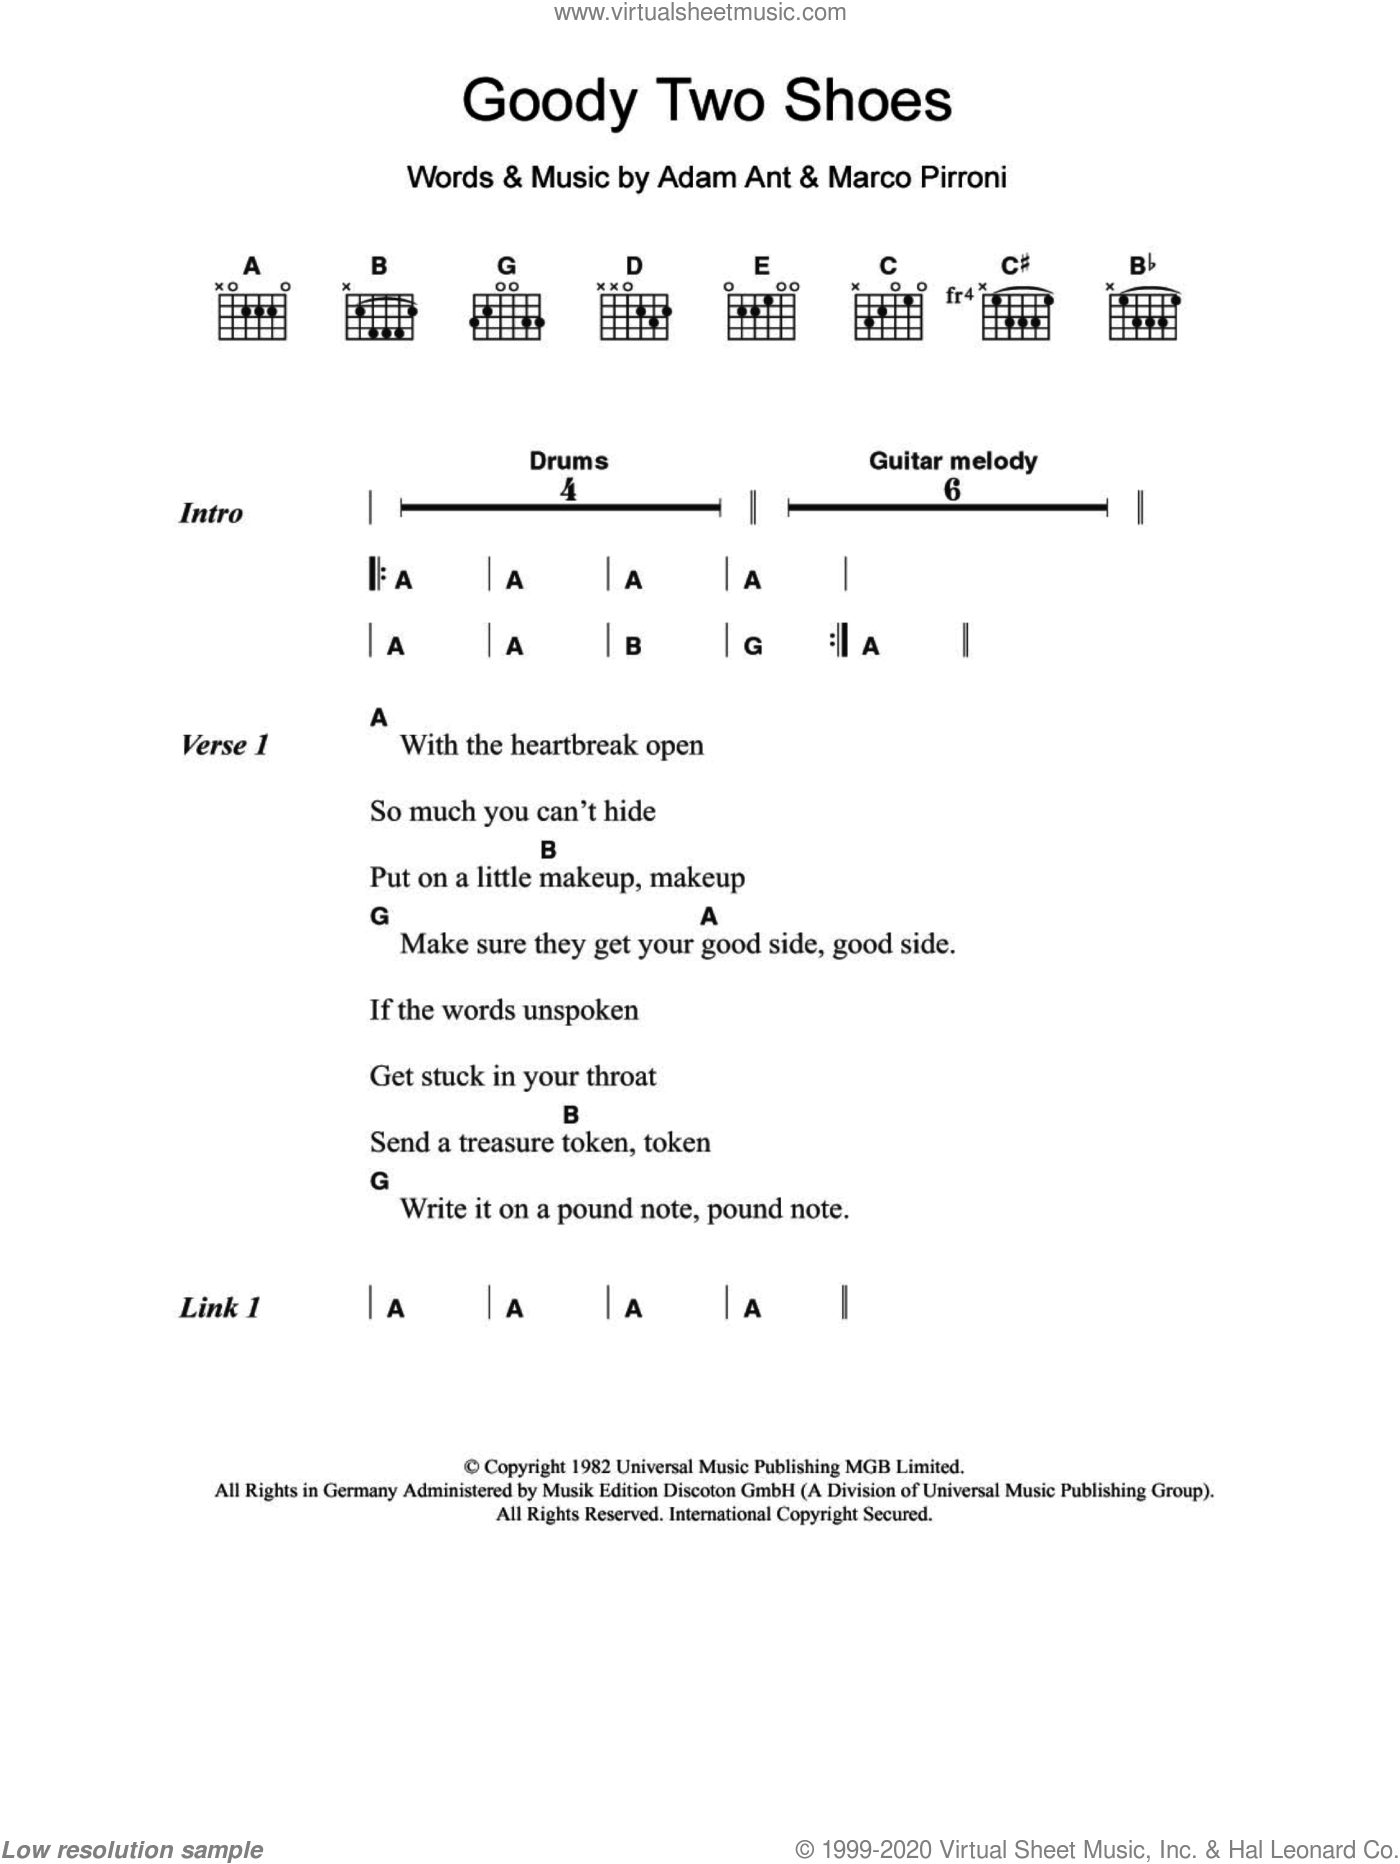 Goody Two Shoes sheet music for guitar (chords) by Marco Pirroni and Adam Ant